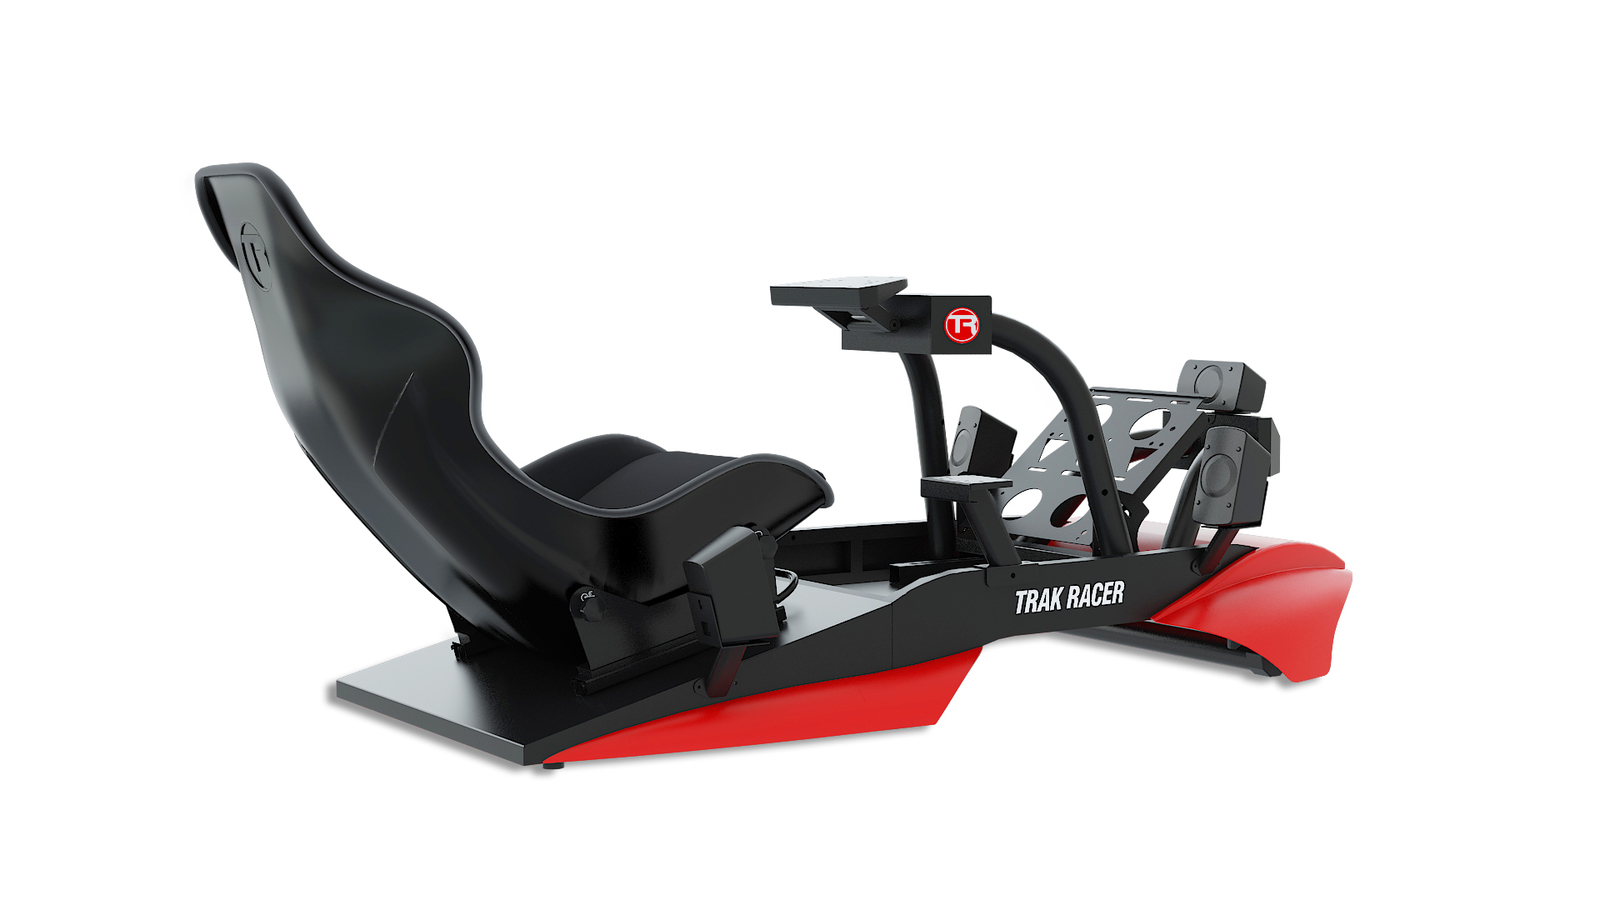 f1 racing chair purple folding formula game simulator cockpit seat race